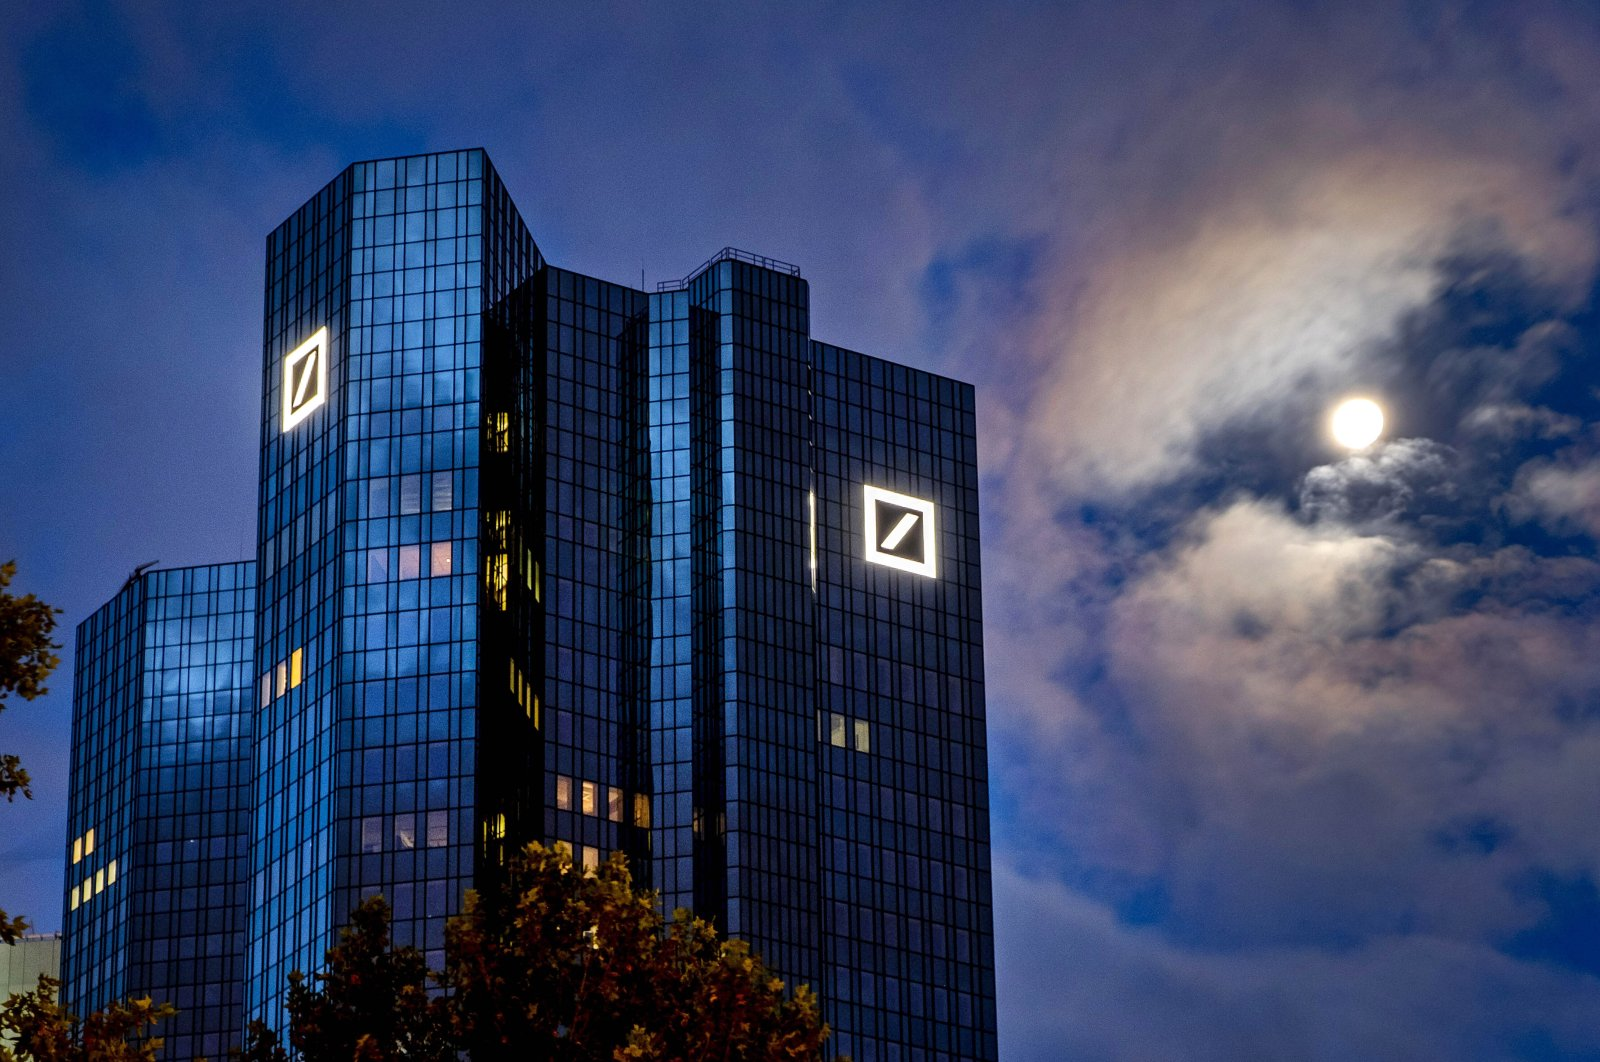 The moon shines next to the headquarters of the Deutsche Bank in Frankfurt, Germany, Oct. 4, 2020. (AP Photo)